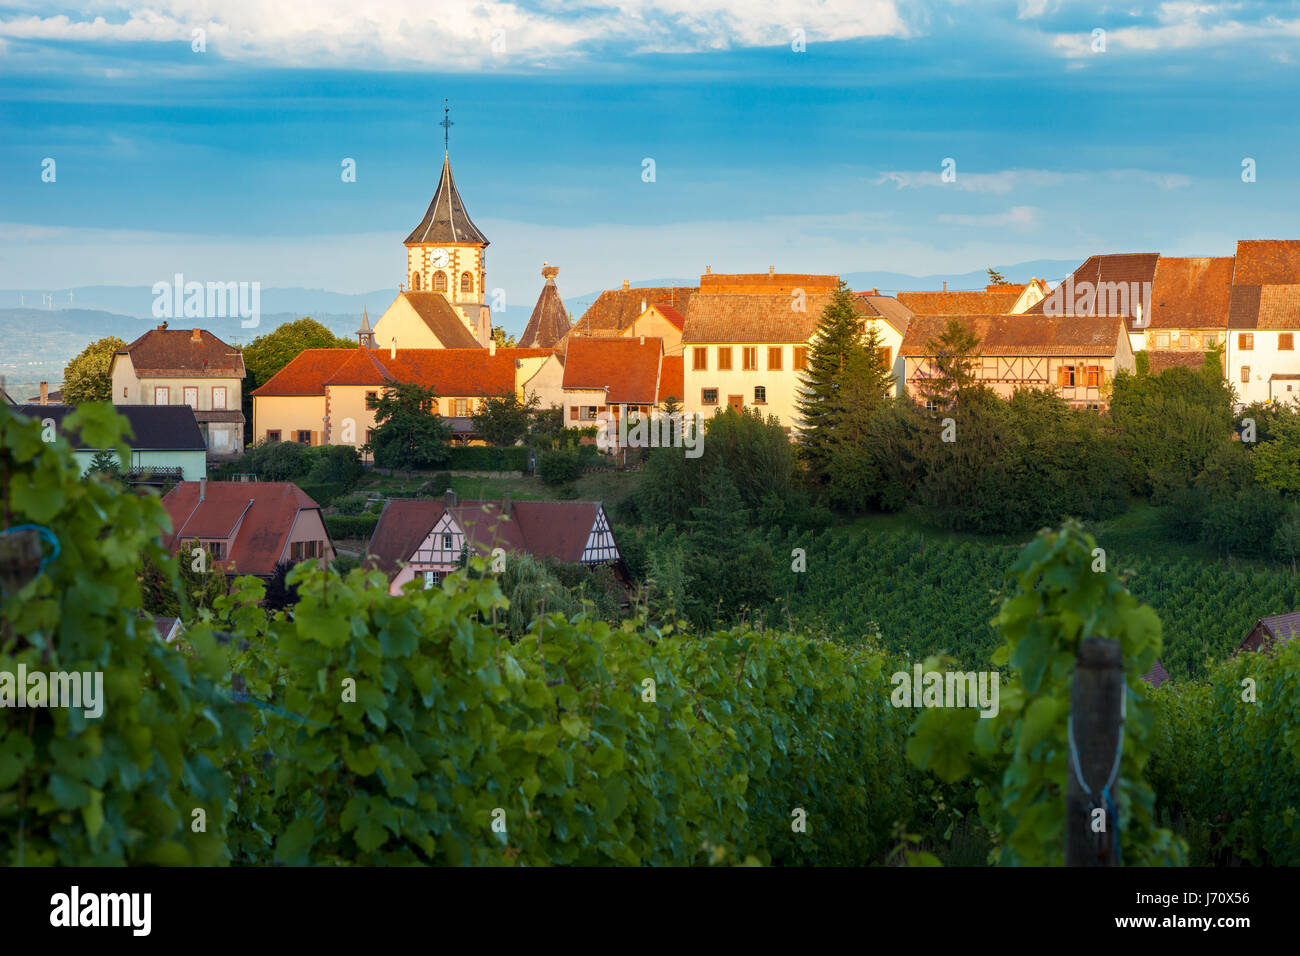 Last rays of sunlight on town of Zellenberg along the Route des Vins, Alsace, Haut-Rhin, France - Stock Image